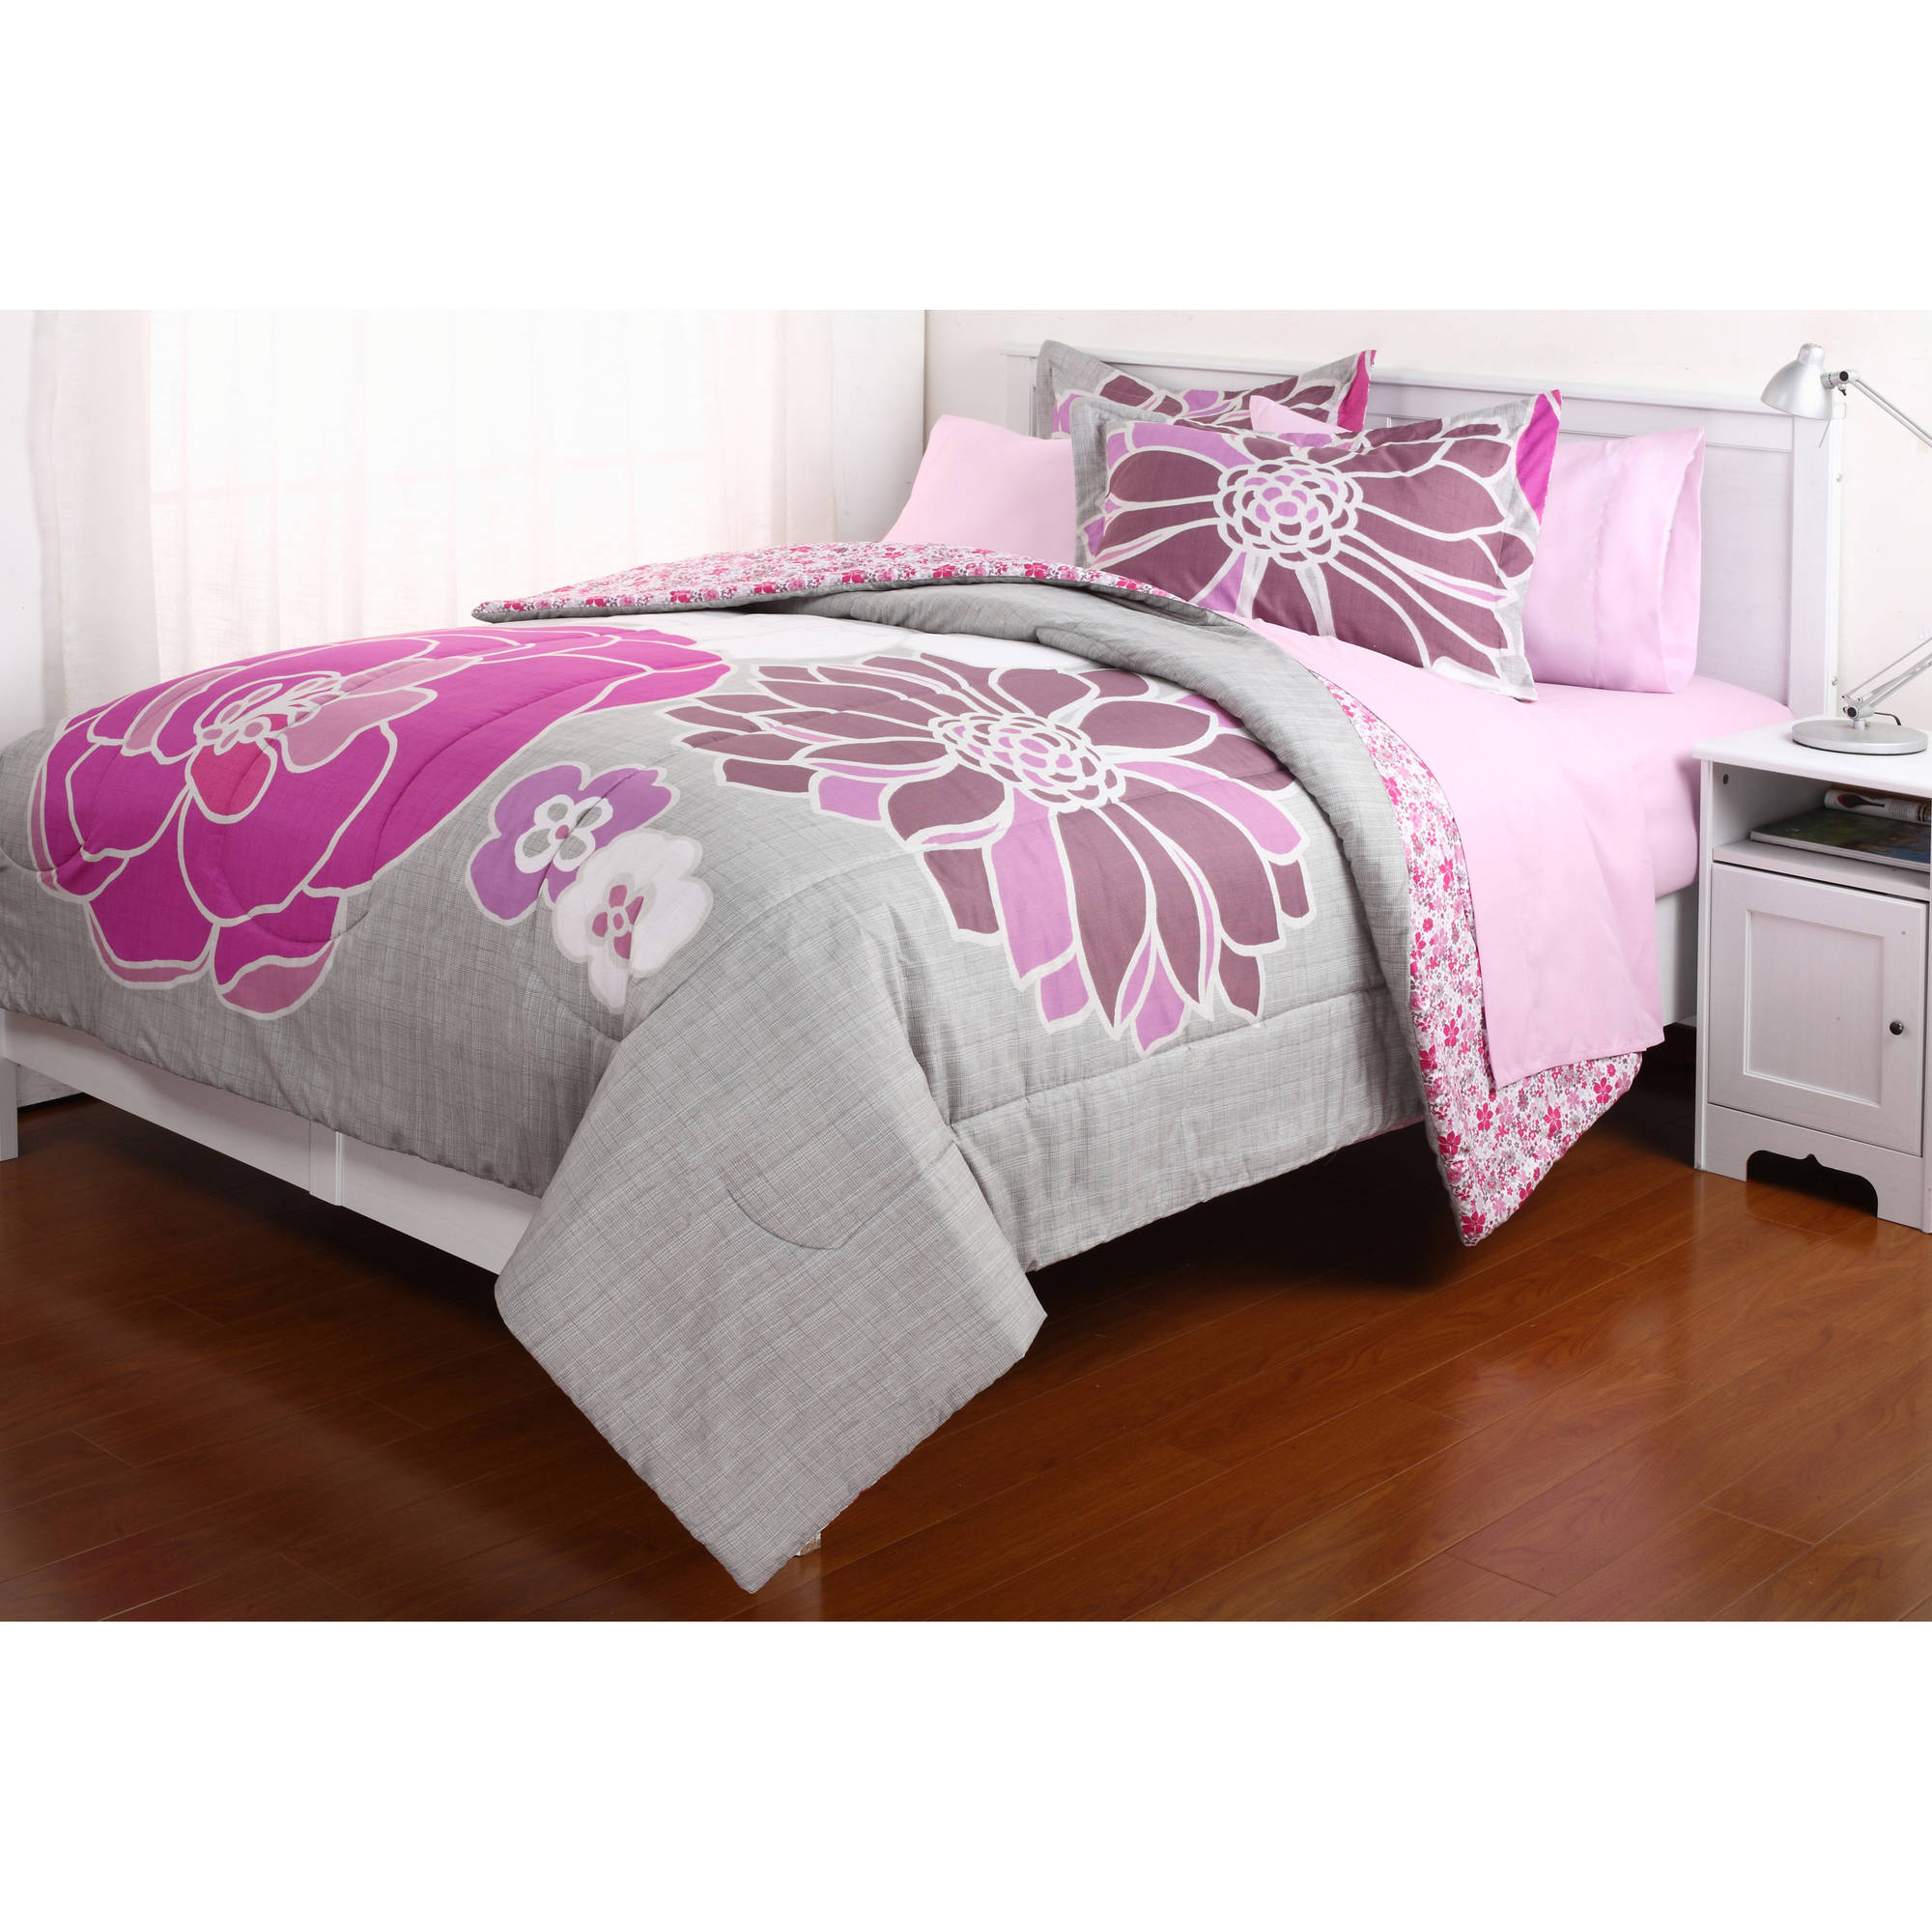 twin set purple elley comforter com kitchen dp xl elephant size amazon home dream factory